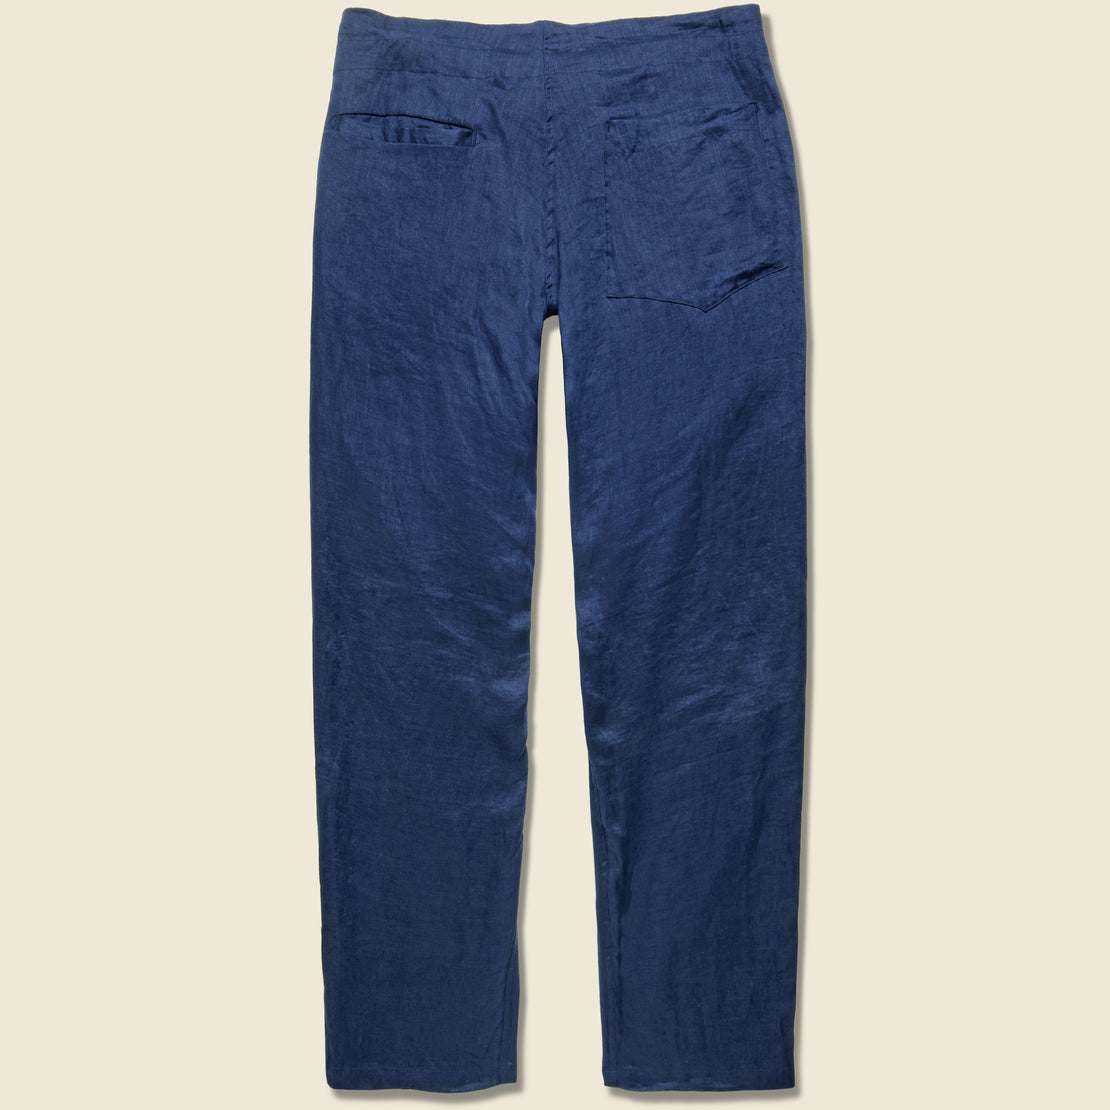 Linen Gathered Waist Pant - Navy